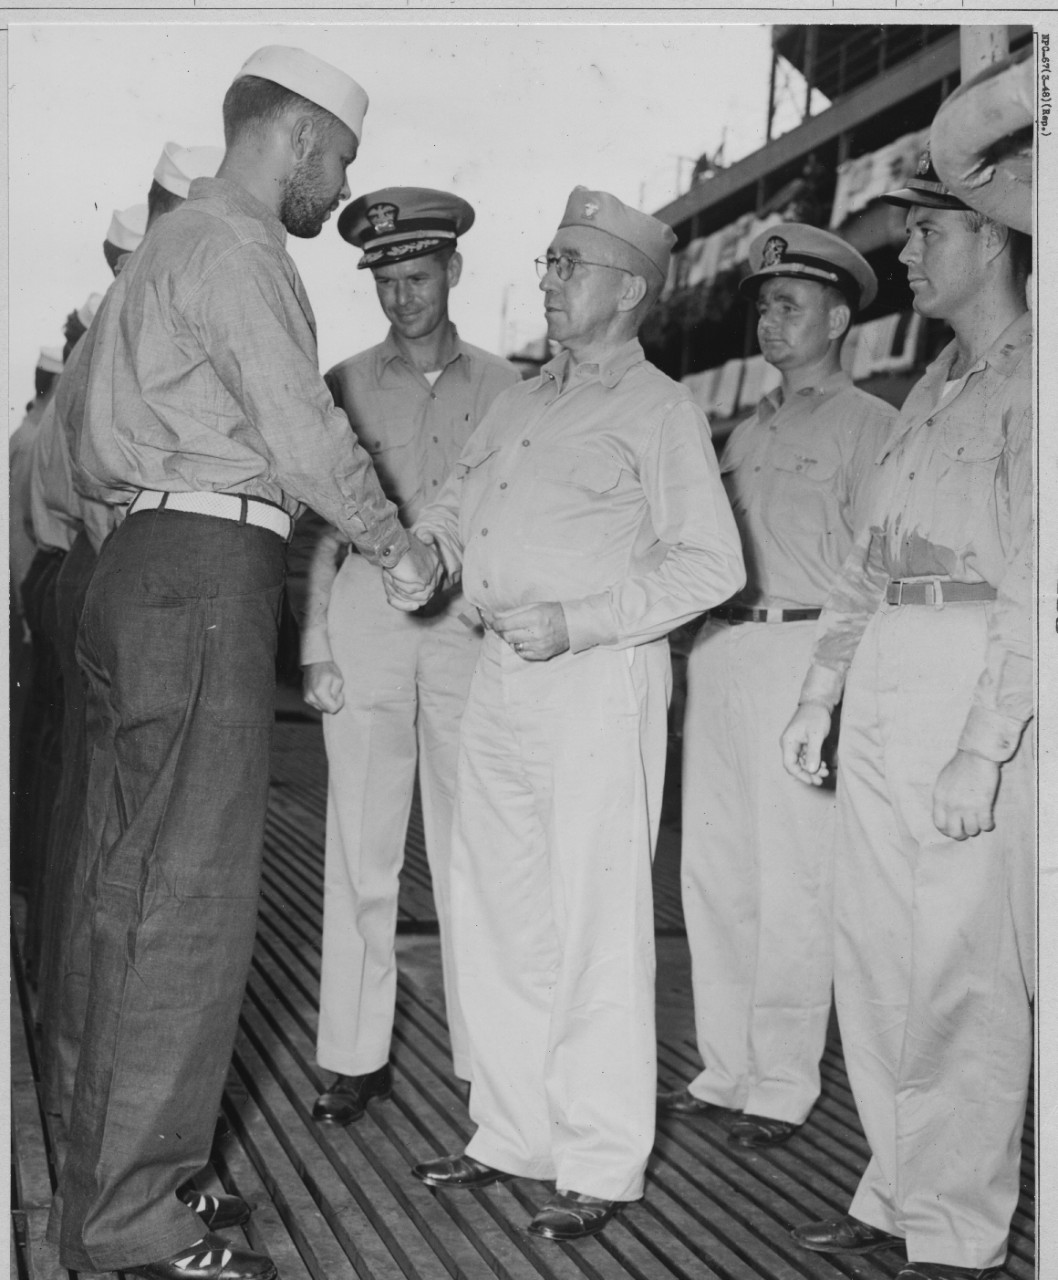 While Cmdr. John F. Davidson looks on approvingly, Rear Adm. Fife exchanges pleasantries with a bearded member of Blackfish's crew on the occasion of the men being awarded their Submarine Combat Insignias, 23 December 1943. Note bedding airing on the lifelines of the tender in the background. (U.S. Navy Photograph 80-G-394433, National Archives and Records Administration, Still Pictures Division, College Park, Md.)